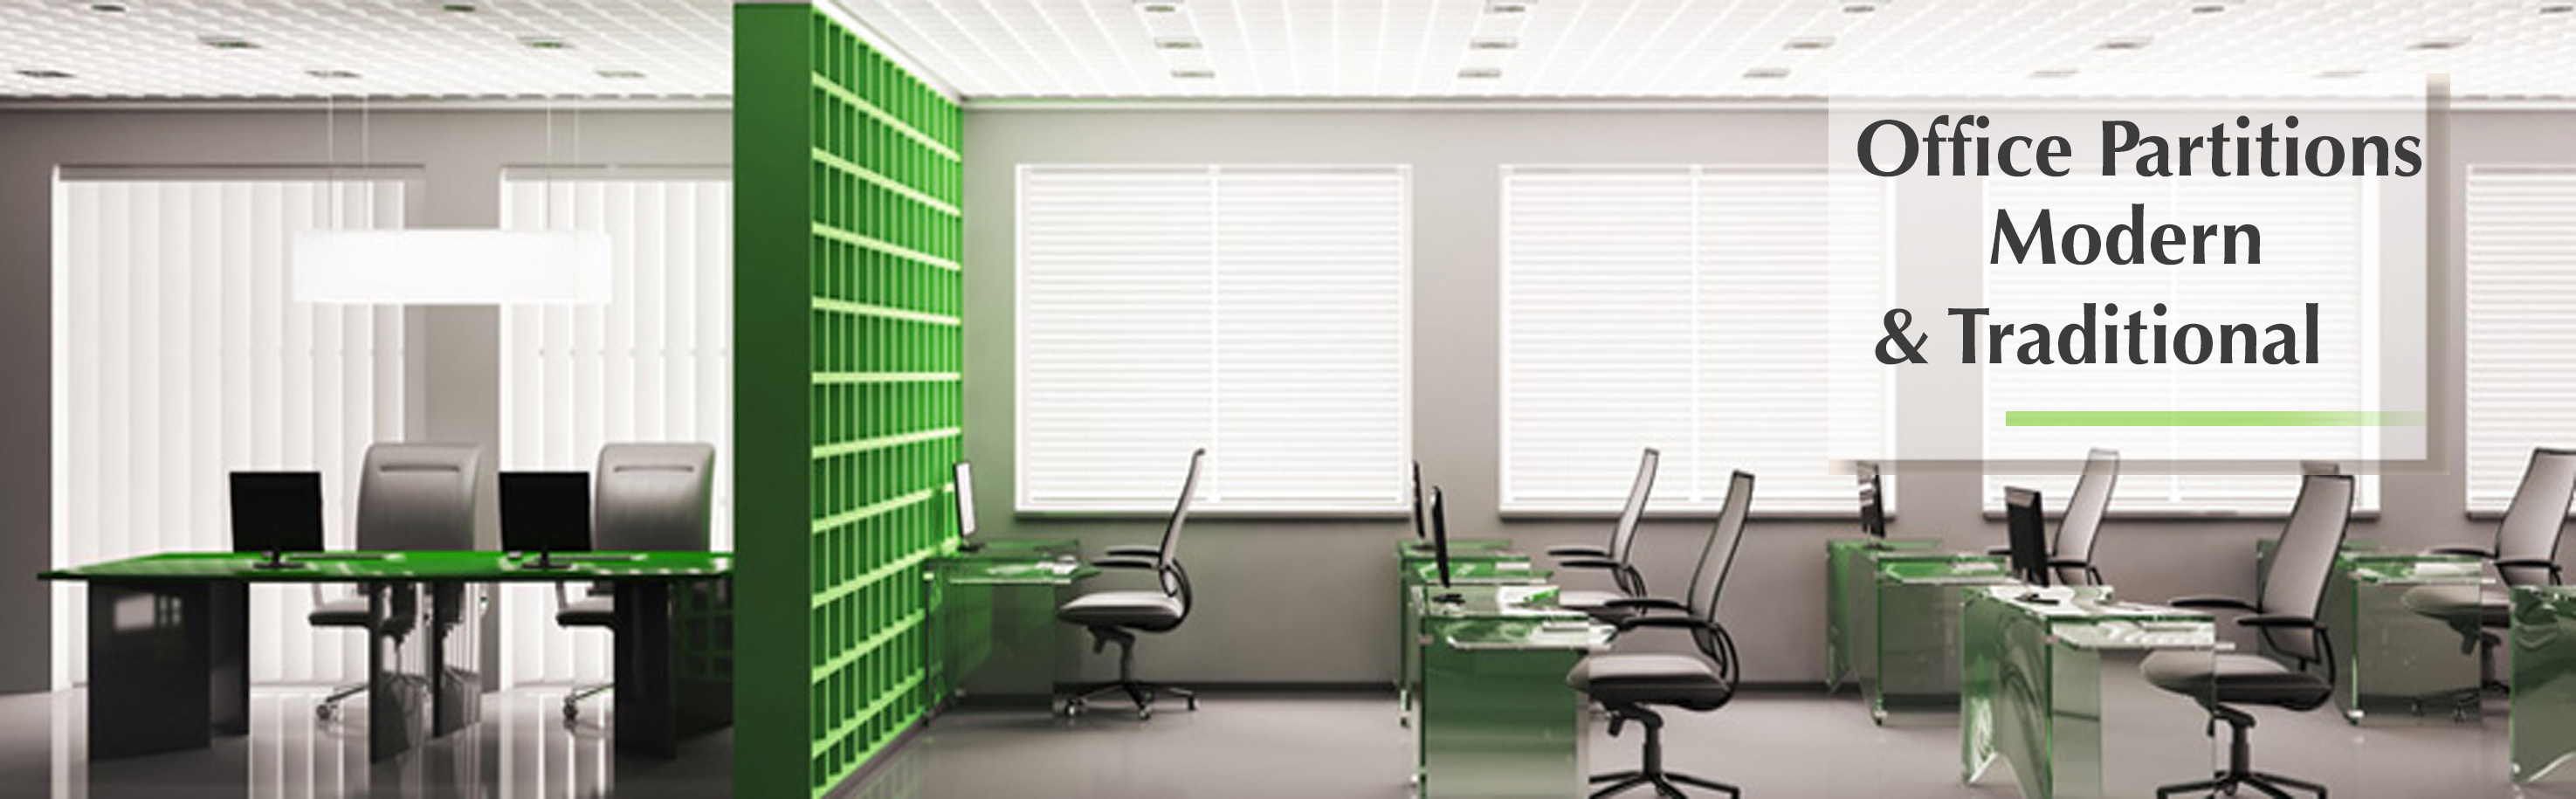 Office Partitions Banner